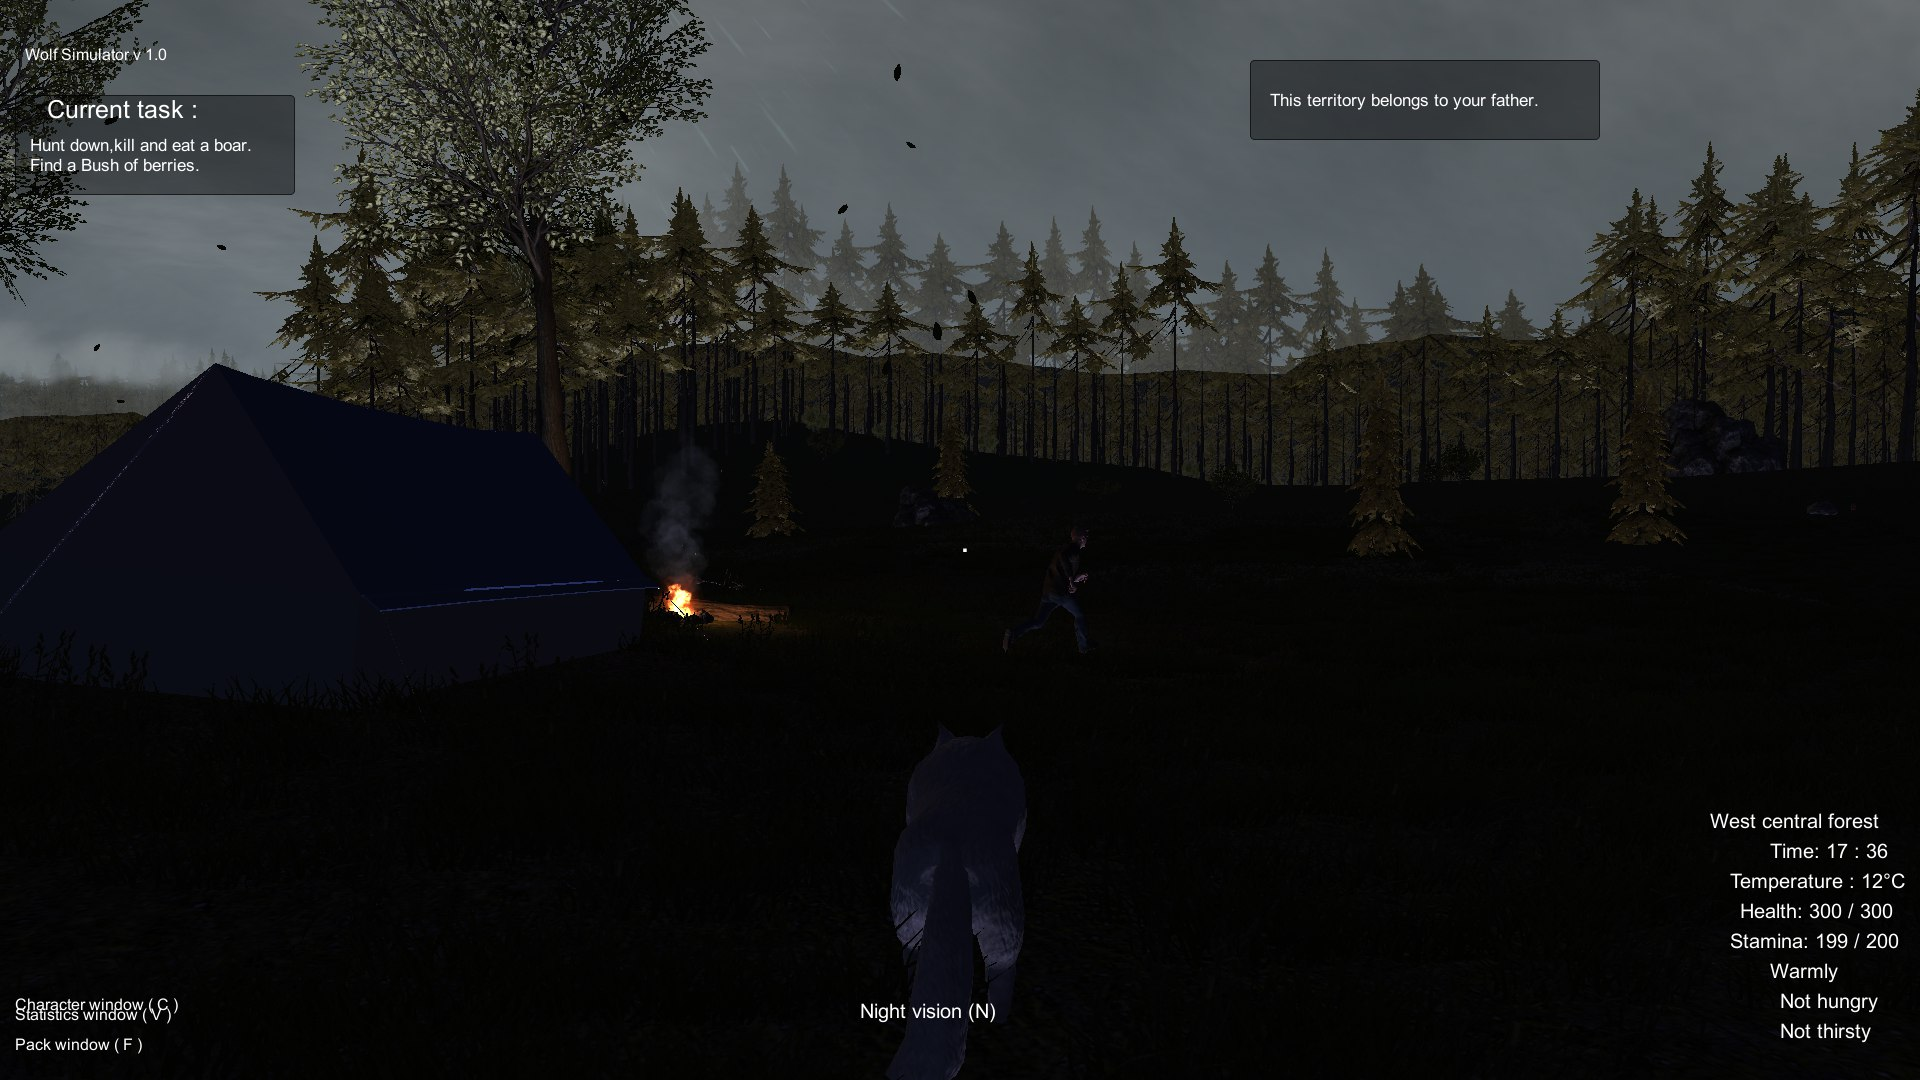 Wolf Simulator Screenshot 1